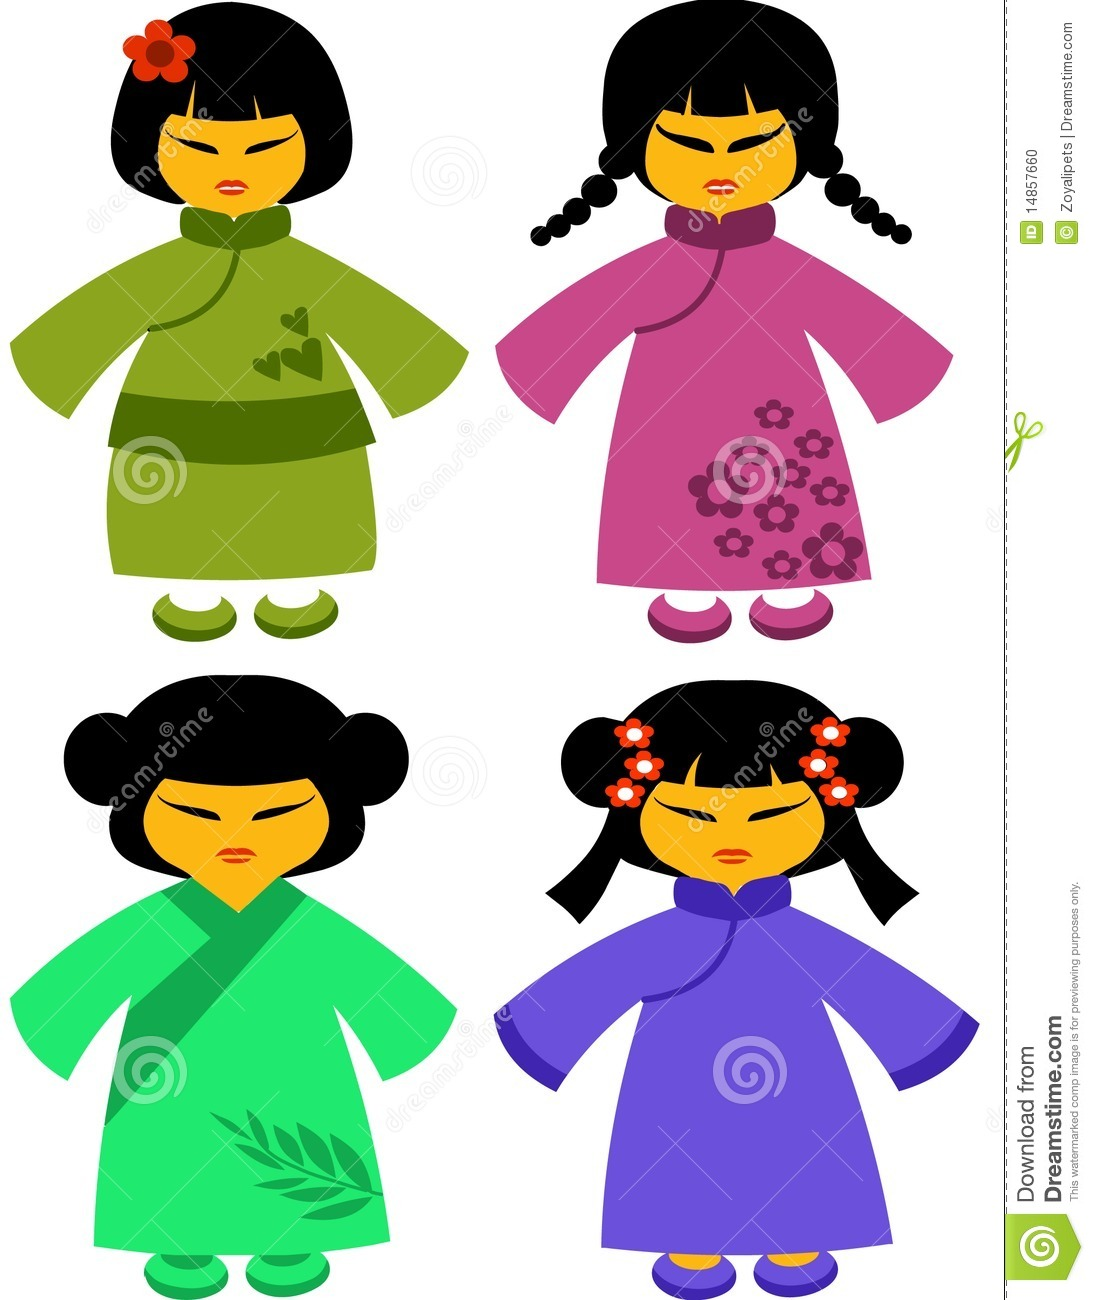 Icons of japanese dolls in traditional dresses -2